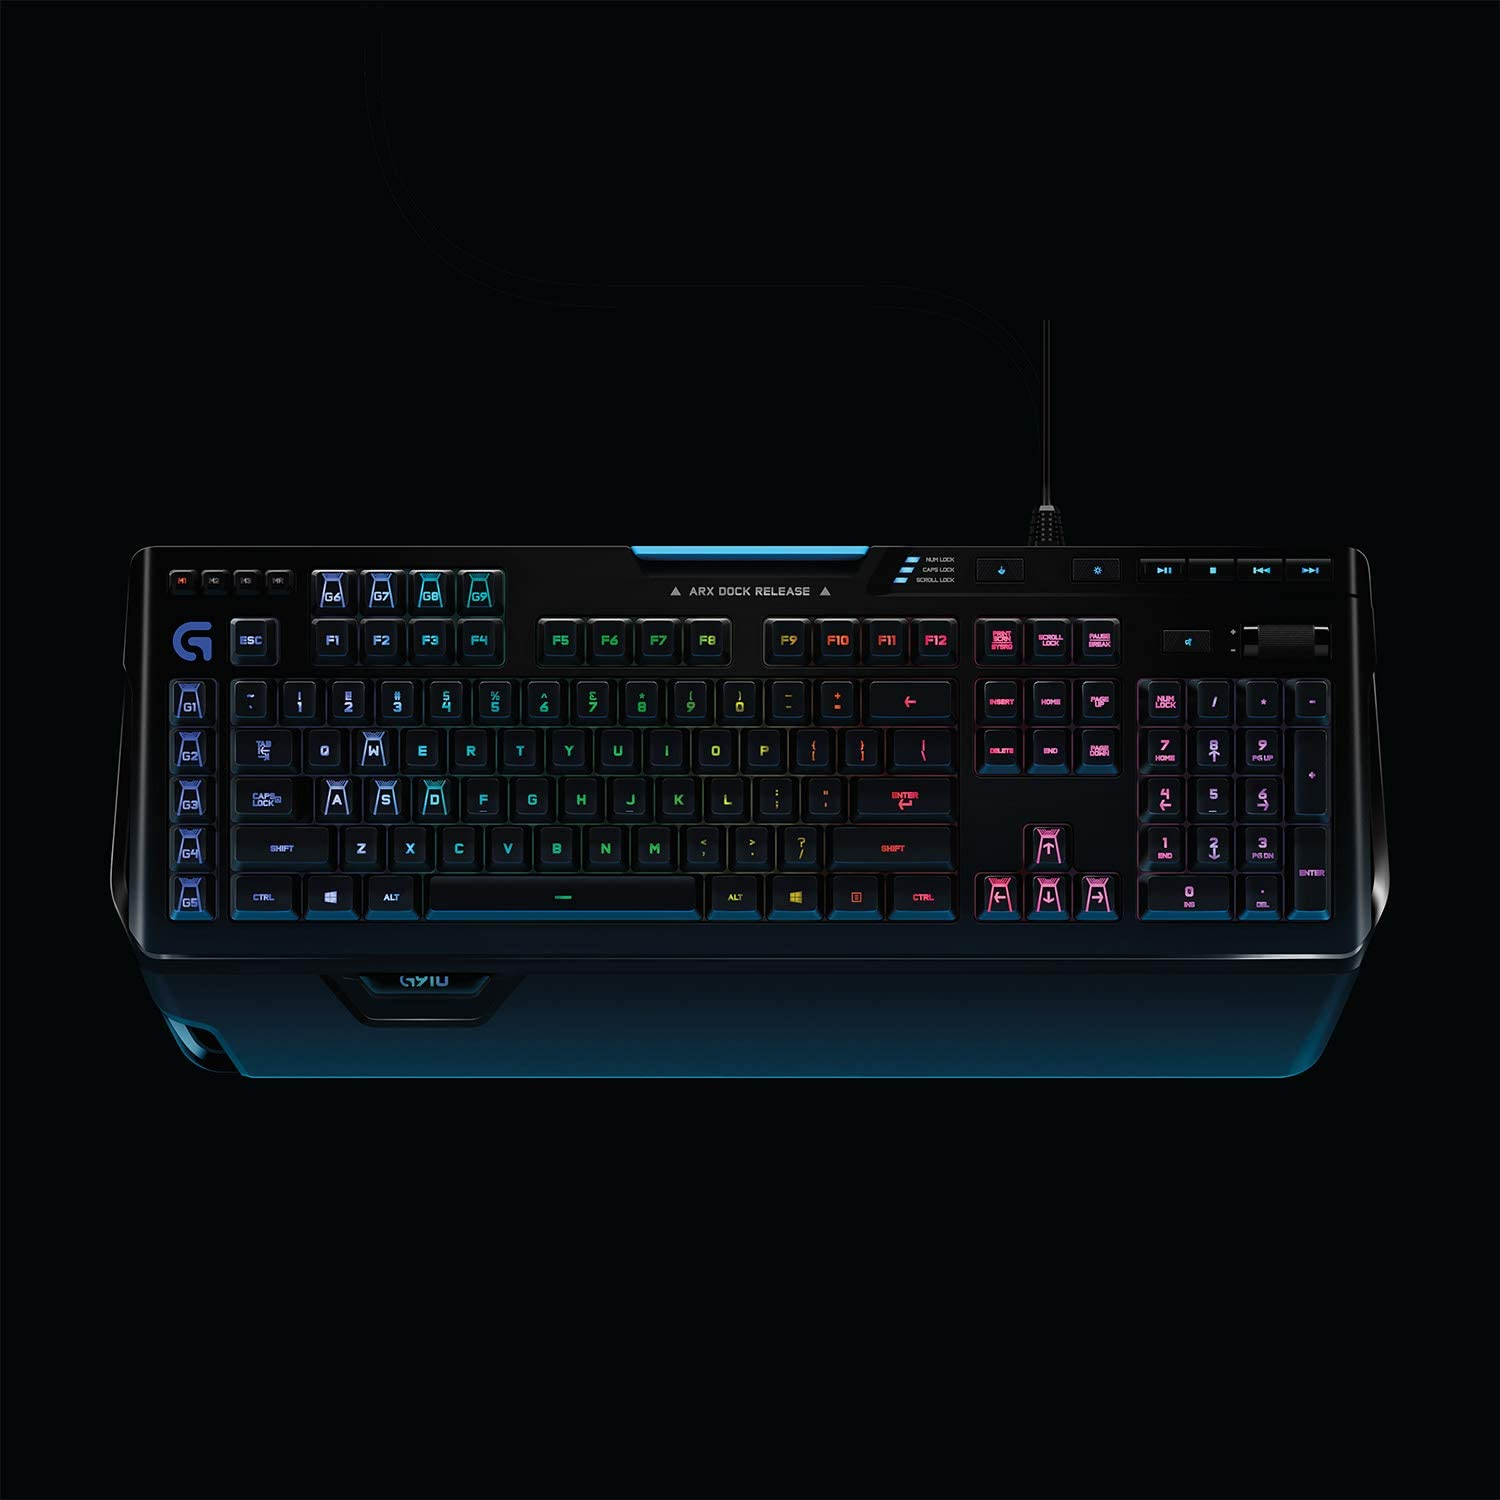 Logitech G910 Orion Spark RGB Mechanical Gaming Keyboard 9 Programmable Buttons Dedicated Media Controls